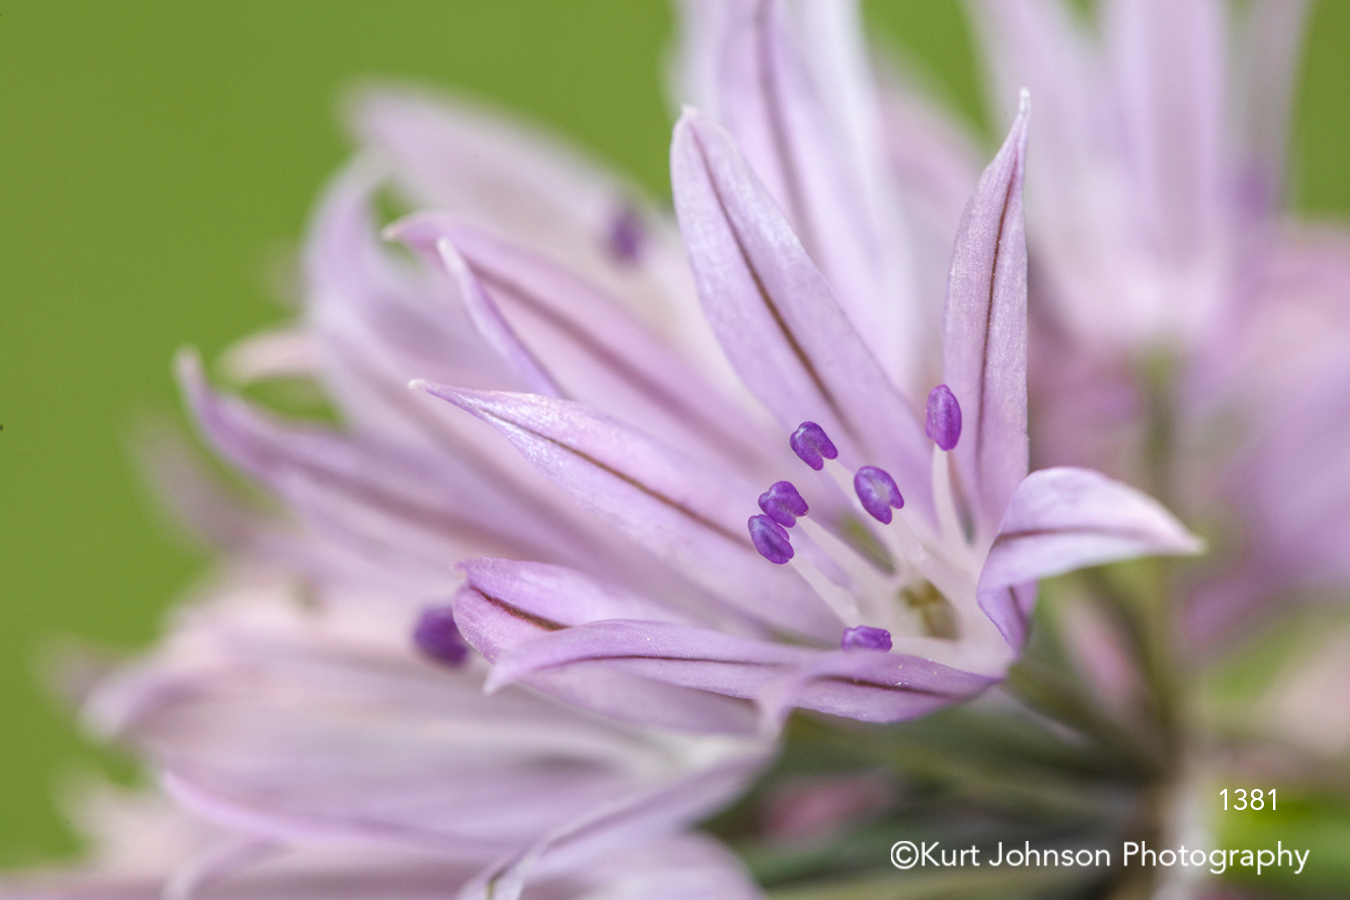 purple chive flower flowers close up detail macro chives herb